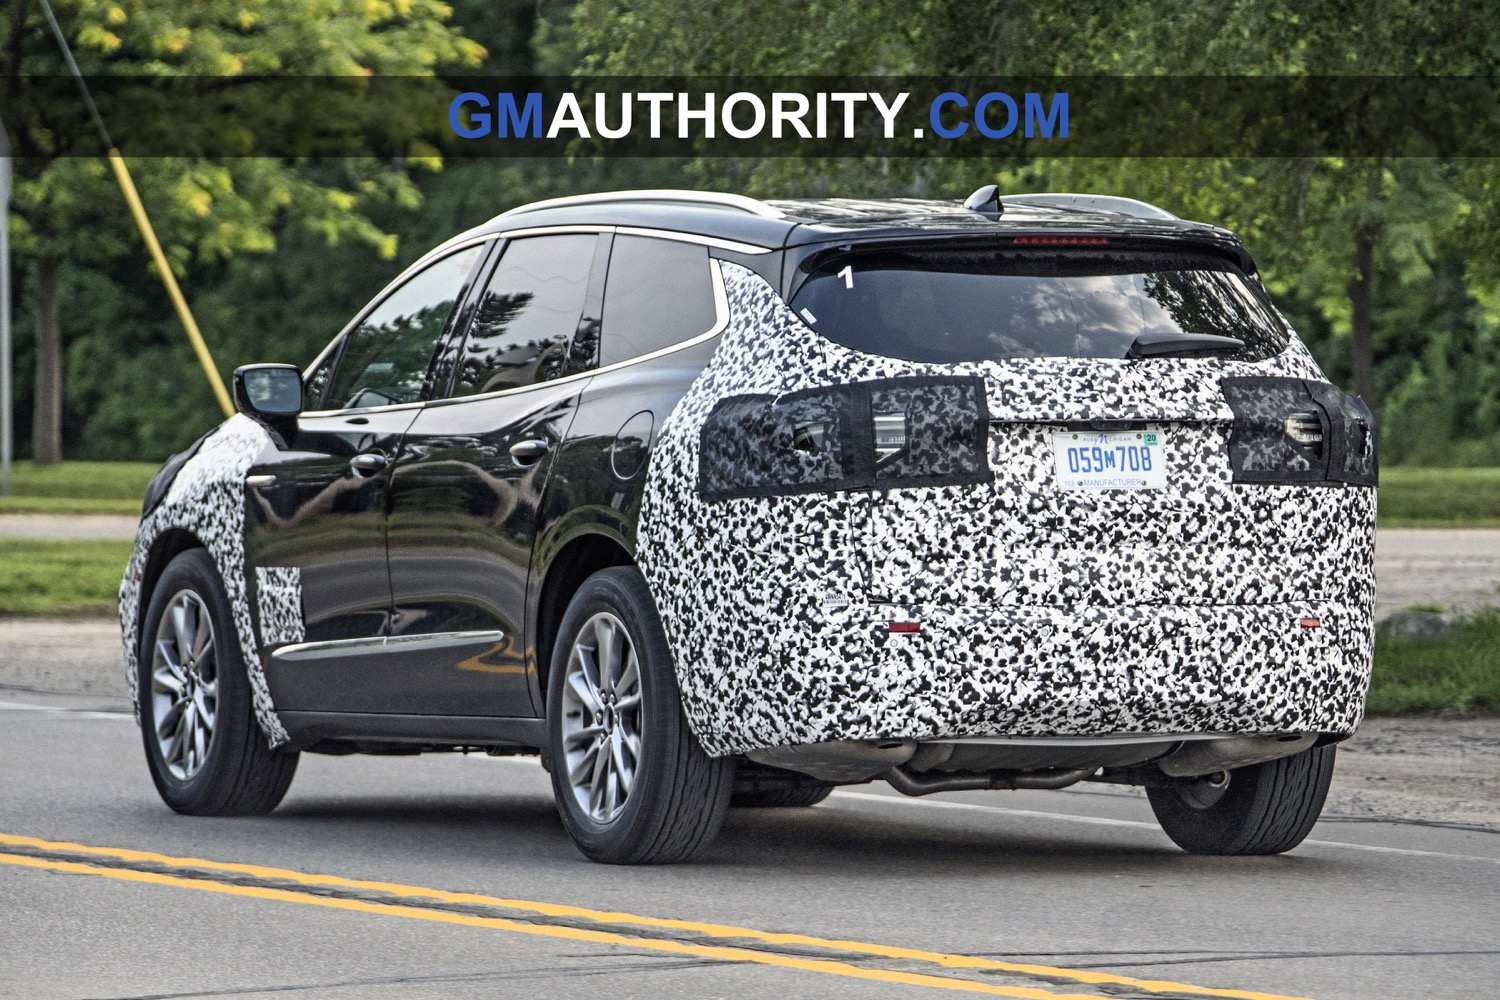 72 Gallery of 2019 Buick Enclave Spy Photos Exterior and Interior by 2019 Buick Enclave Spy Photos